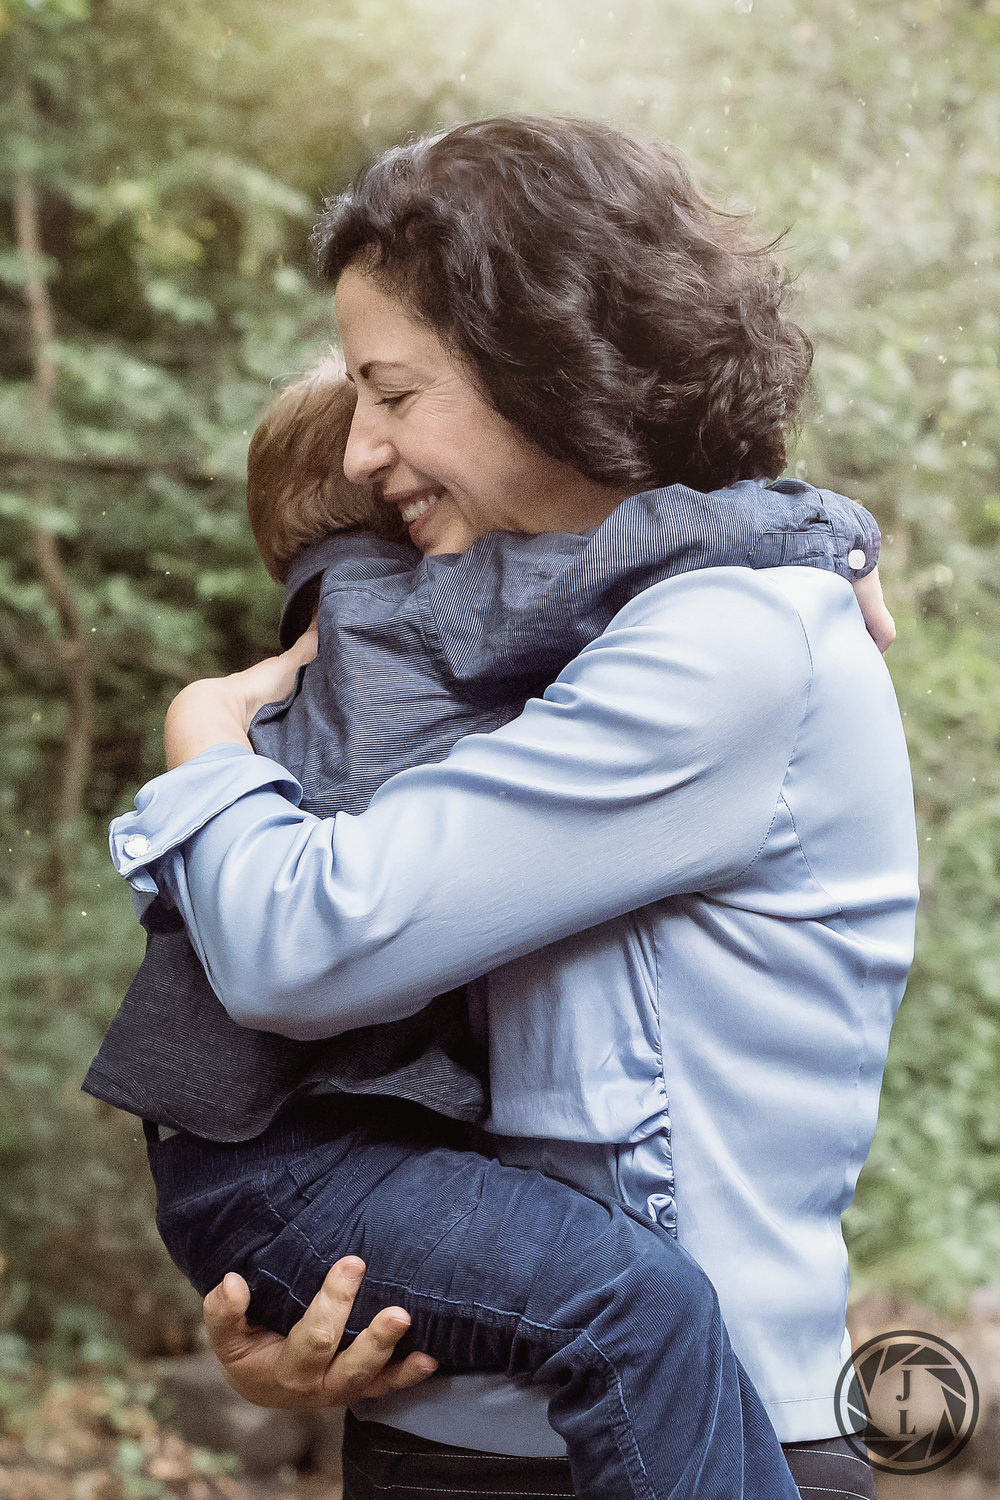 color image of mother hugging her son